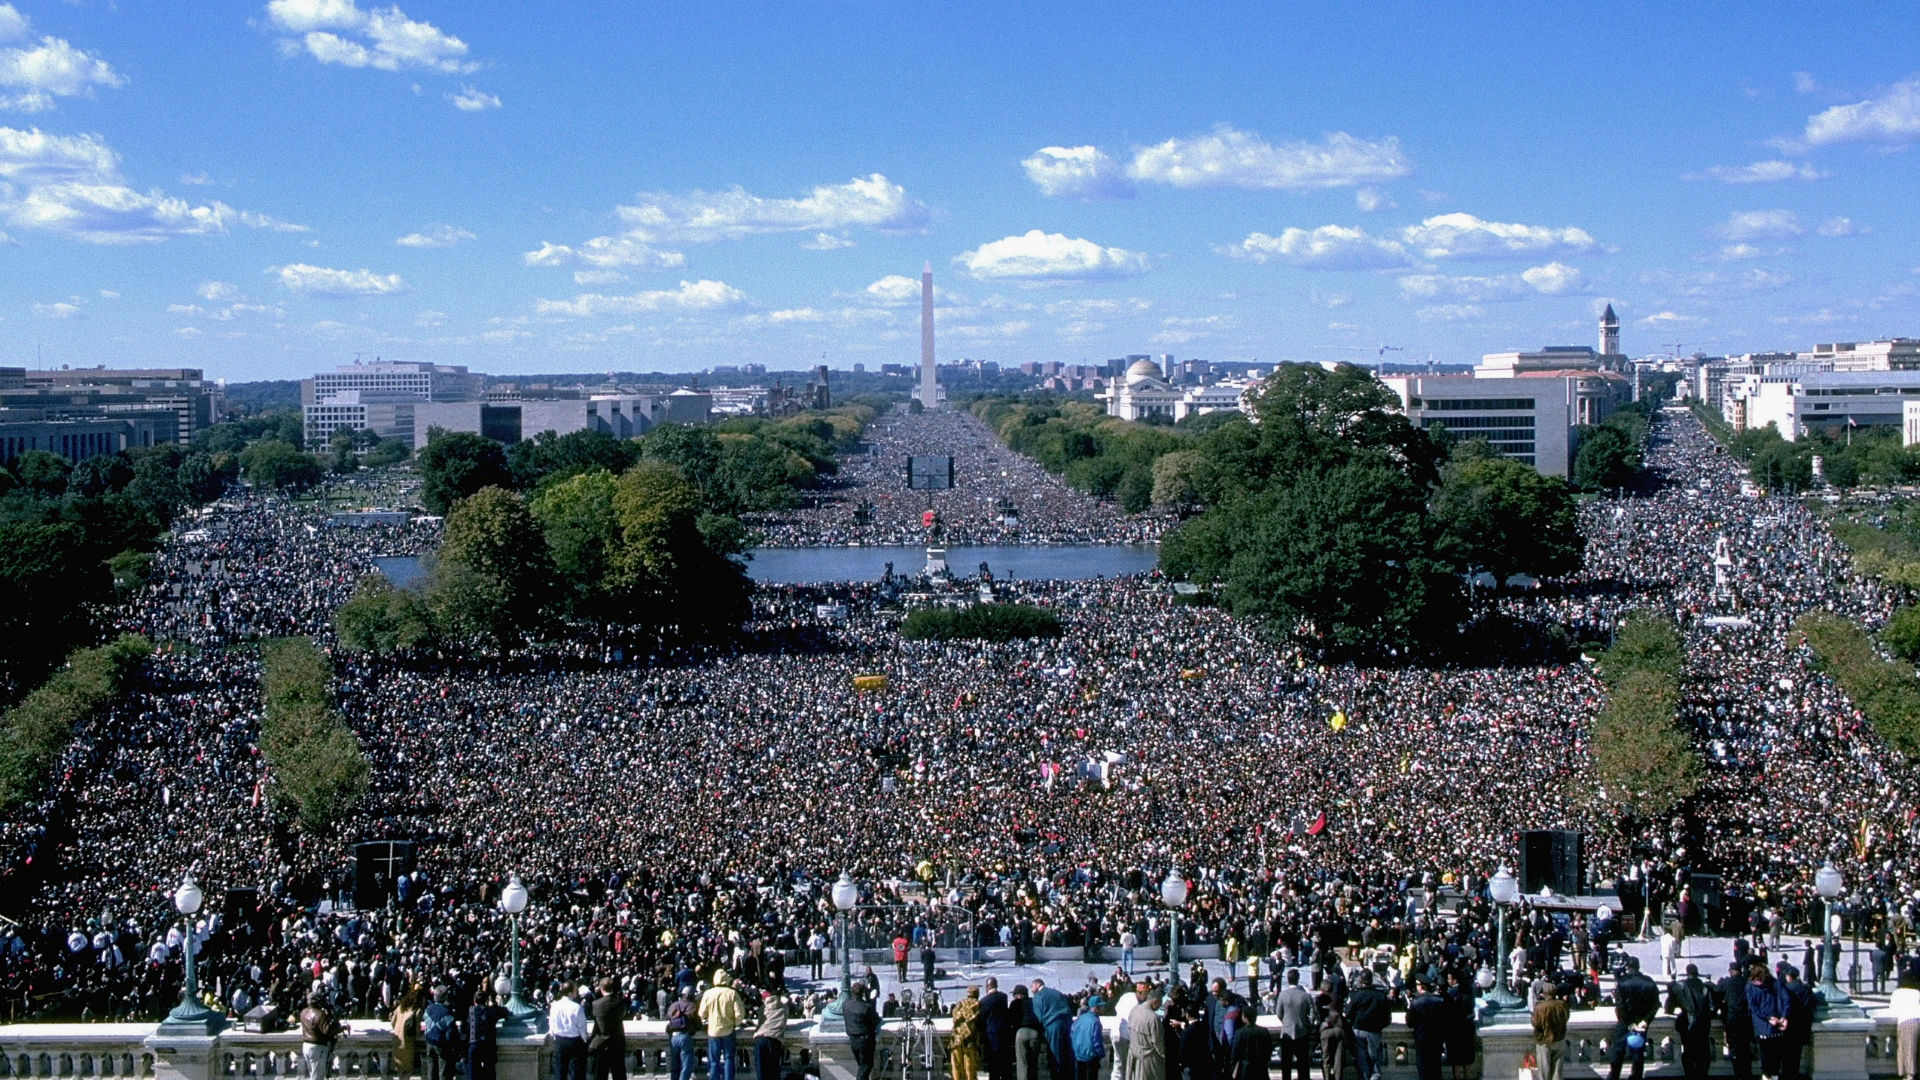 The Million Man March and the moment that changed everything